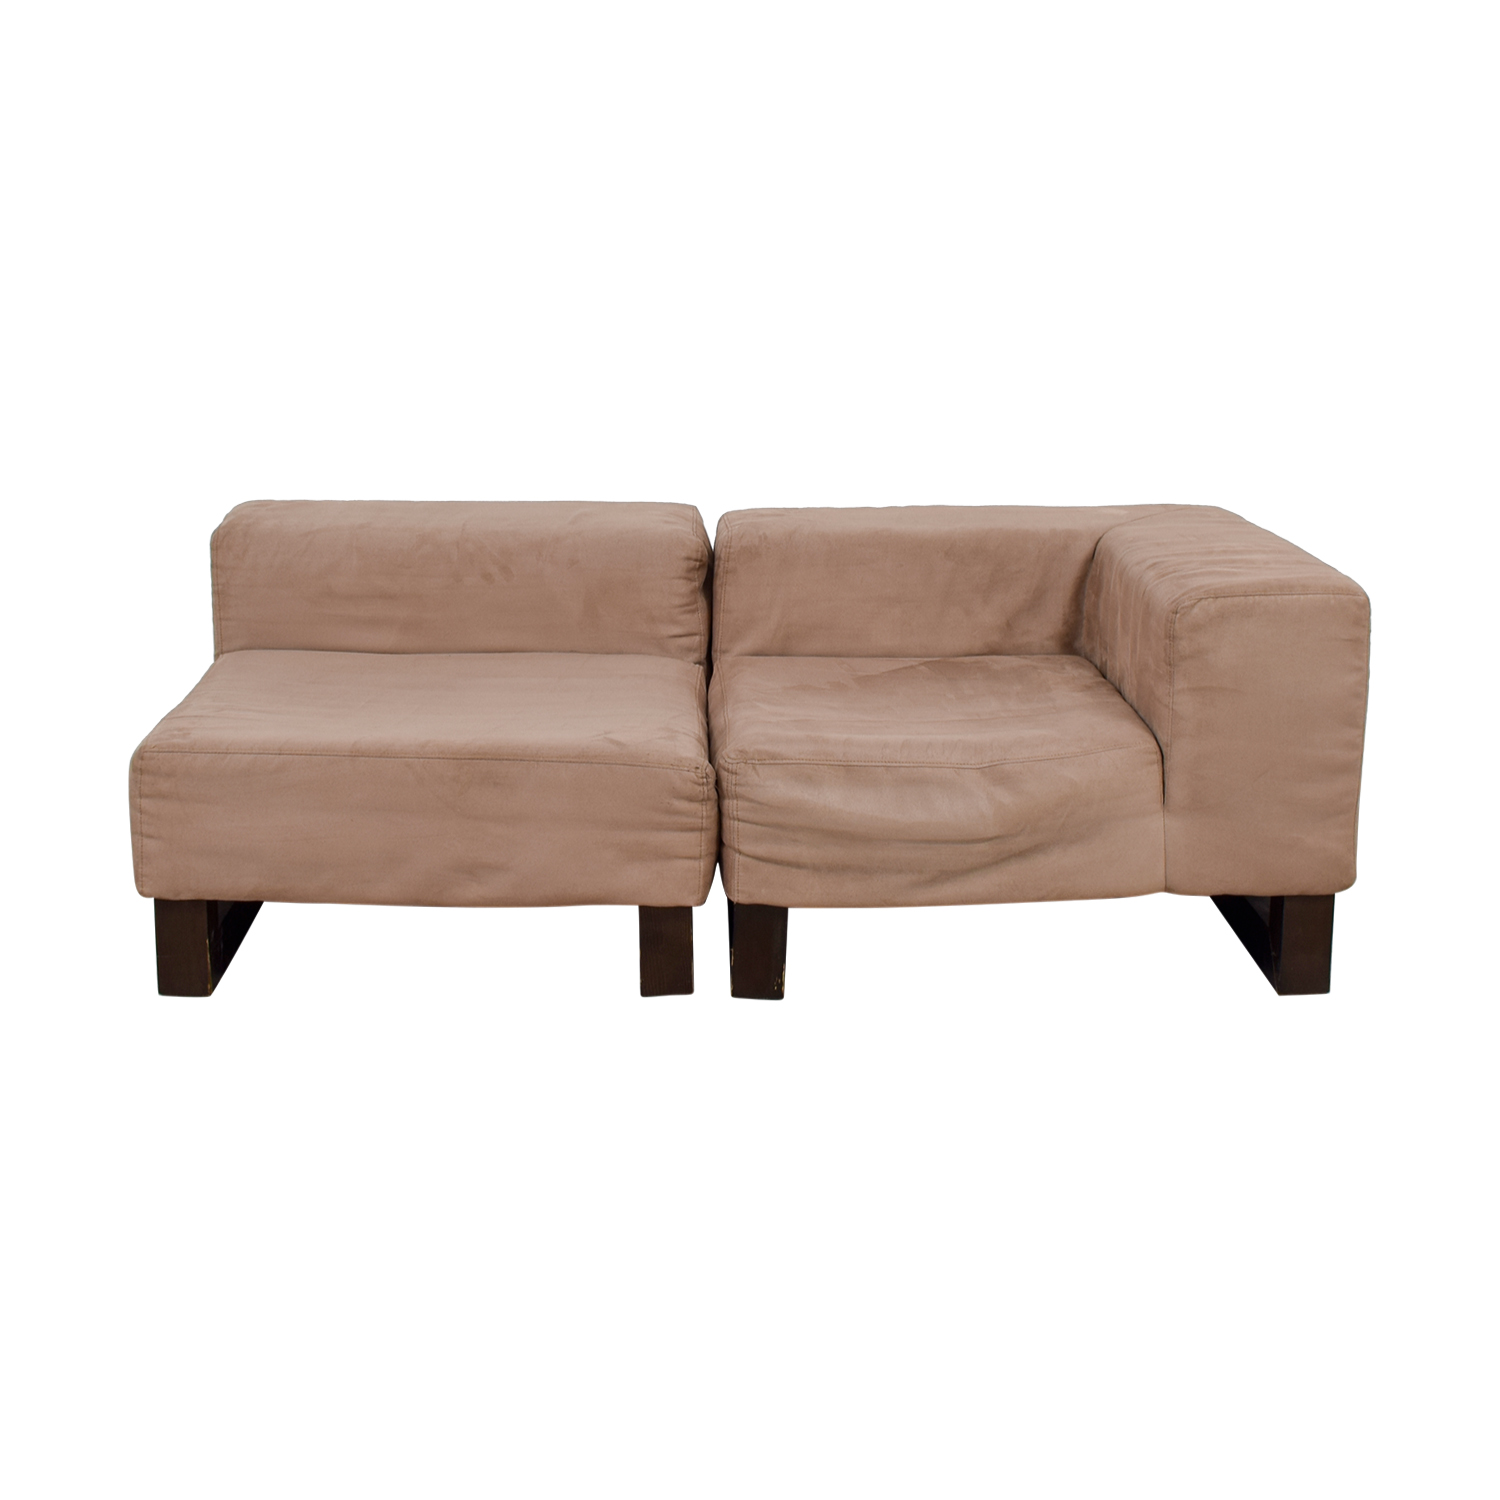 West Elm West Elm Khaki Lounge Sectional discount